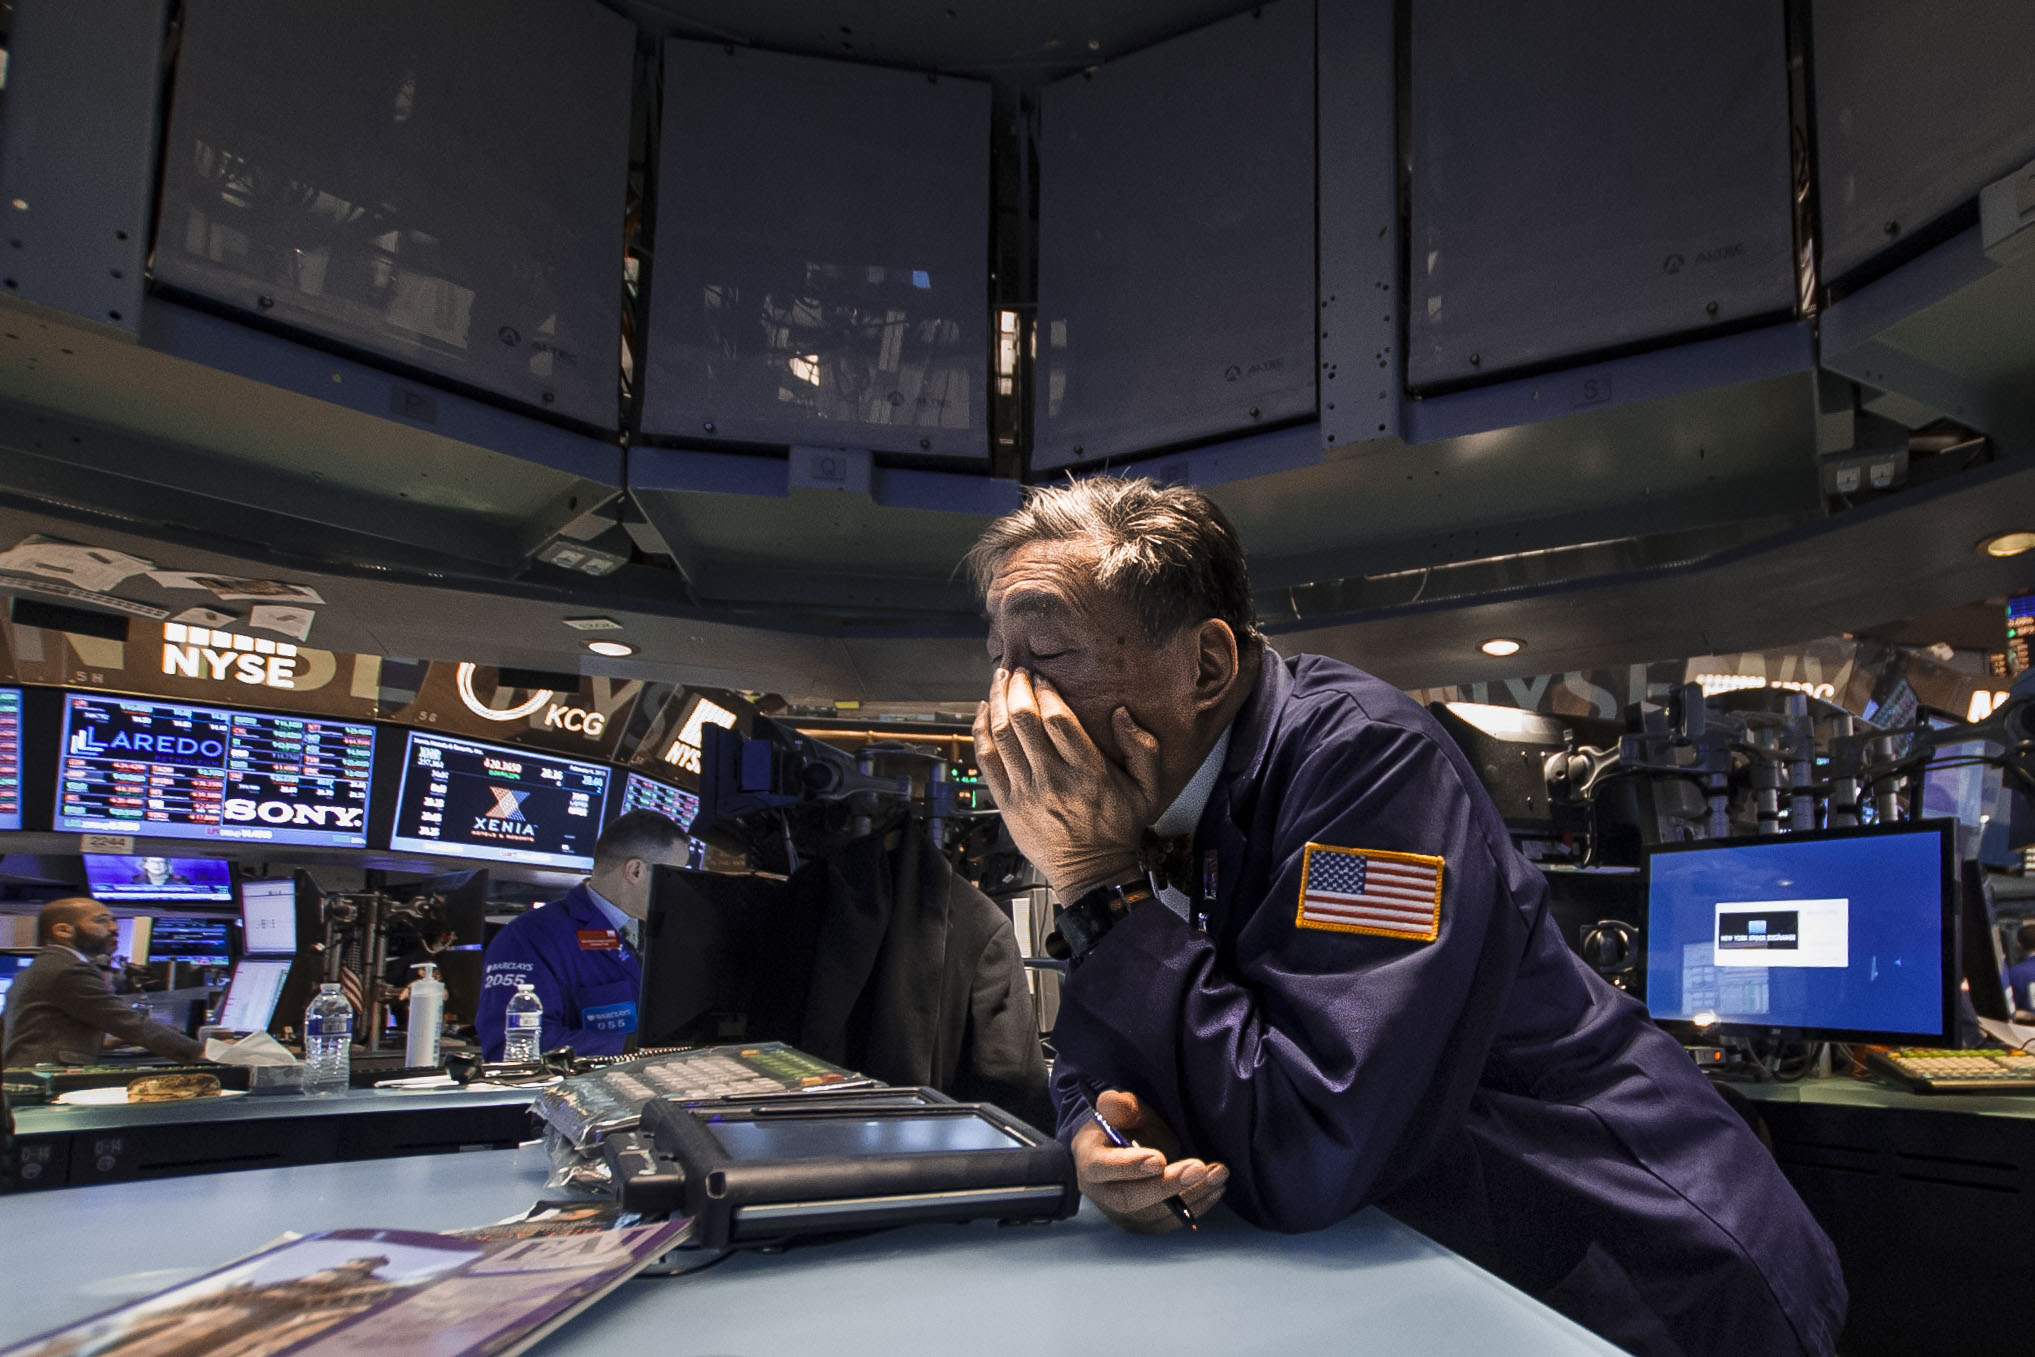 A floor trader rubs his eyes after a long day.